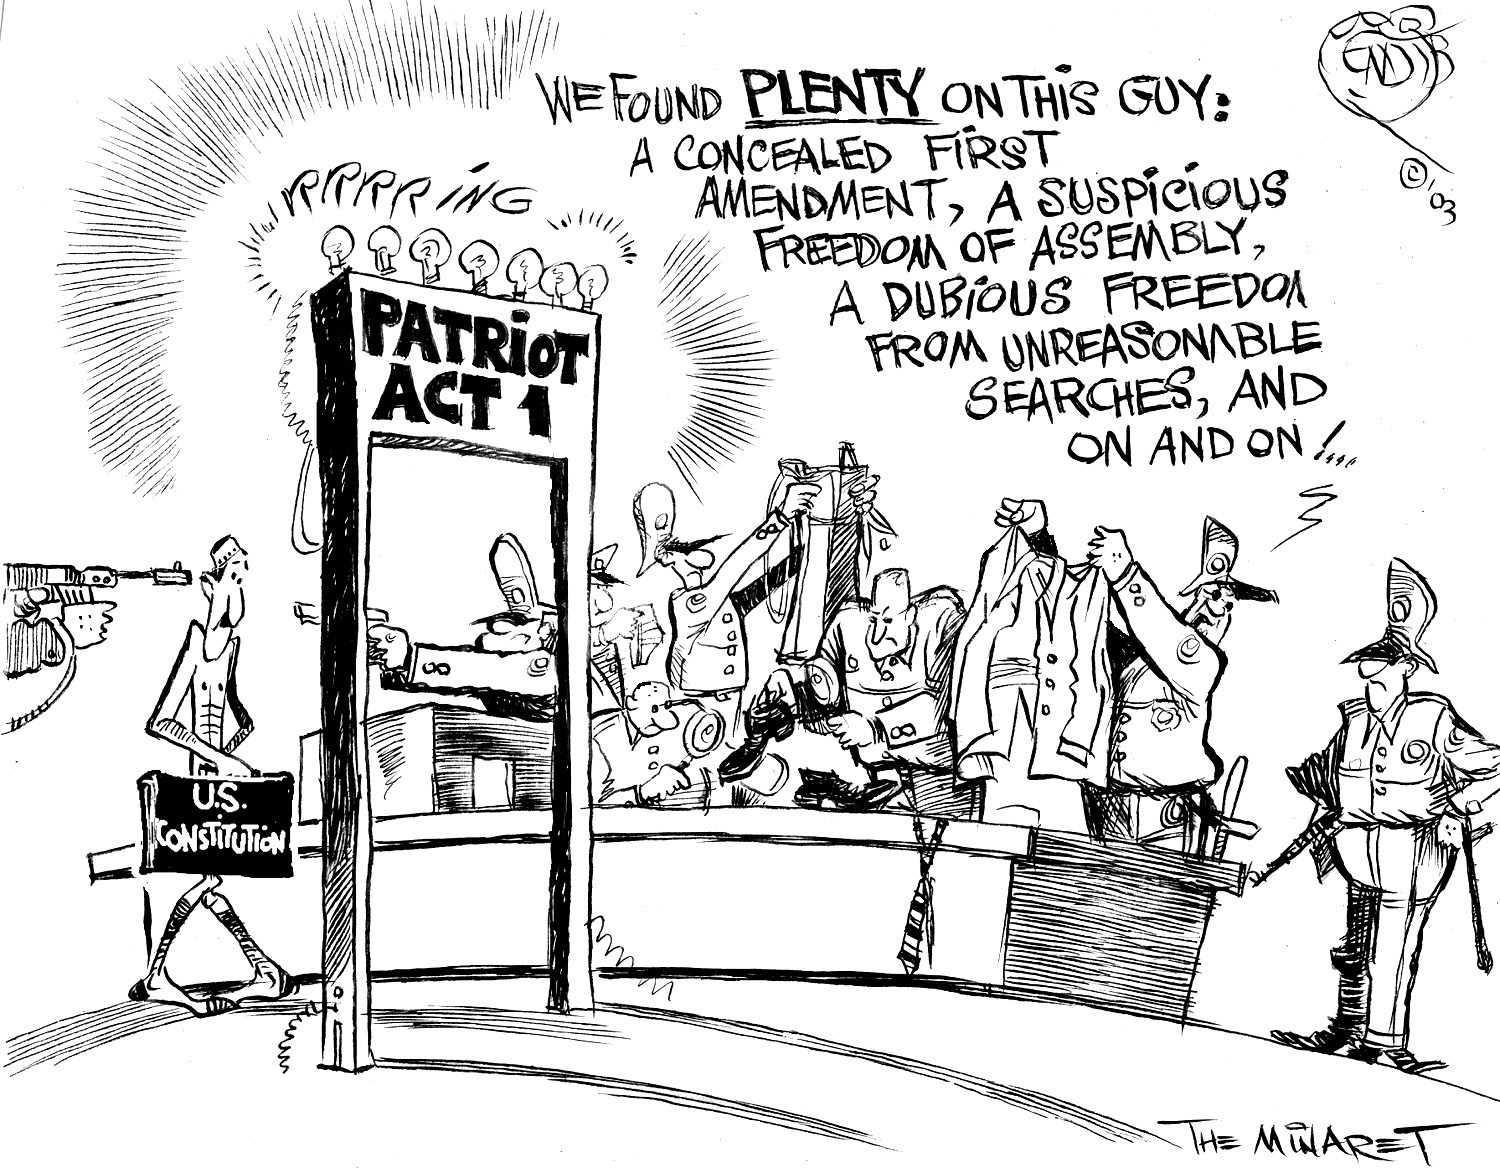 http://www.bendib.com/newones/2003/november/large/Patriot-Act-1.jpg